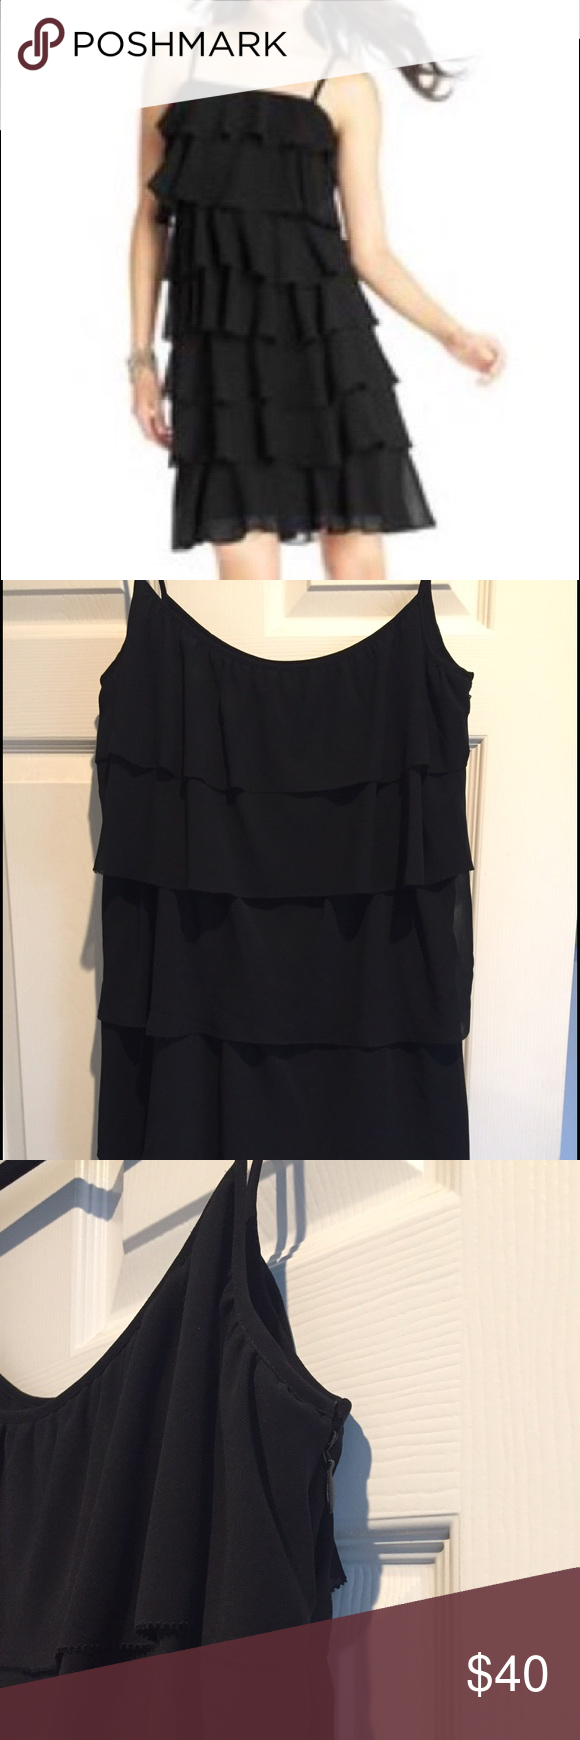 Ann Taylor Loft Tiered Ruffle Dress Black 5 tier dress, great for Holiday Parties! 100% Polyester, lined, spaghetti straps, NWT! LOFT Dresses